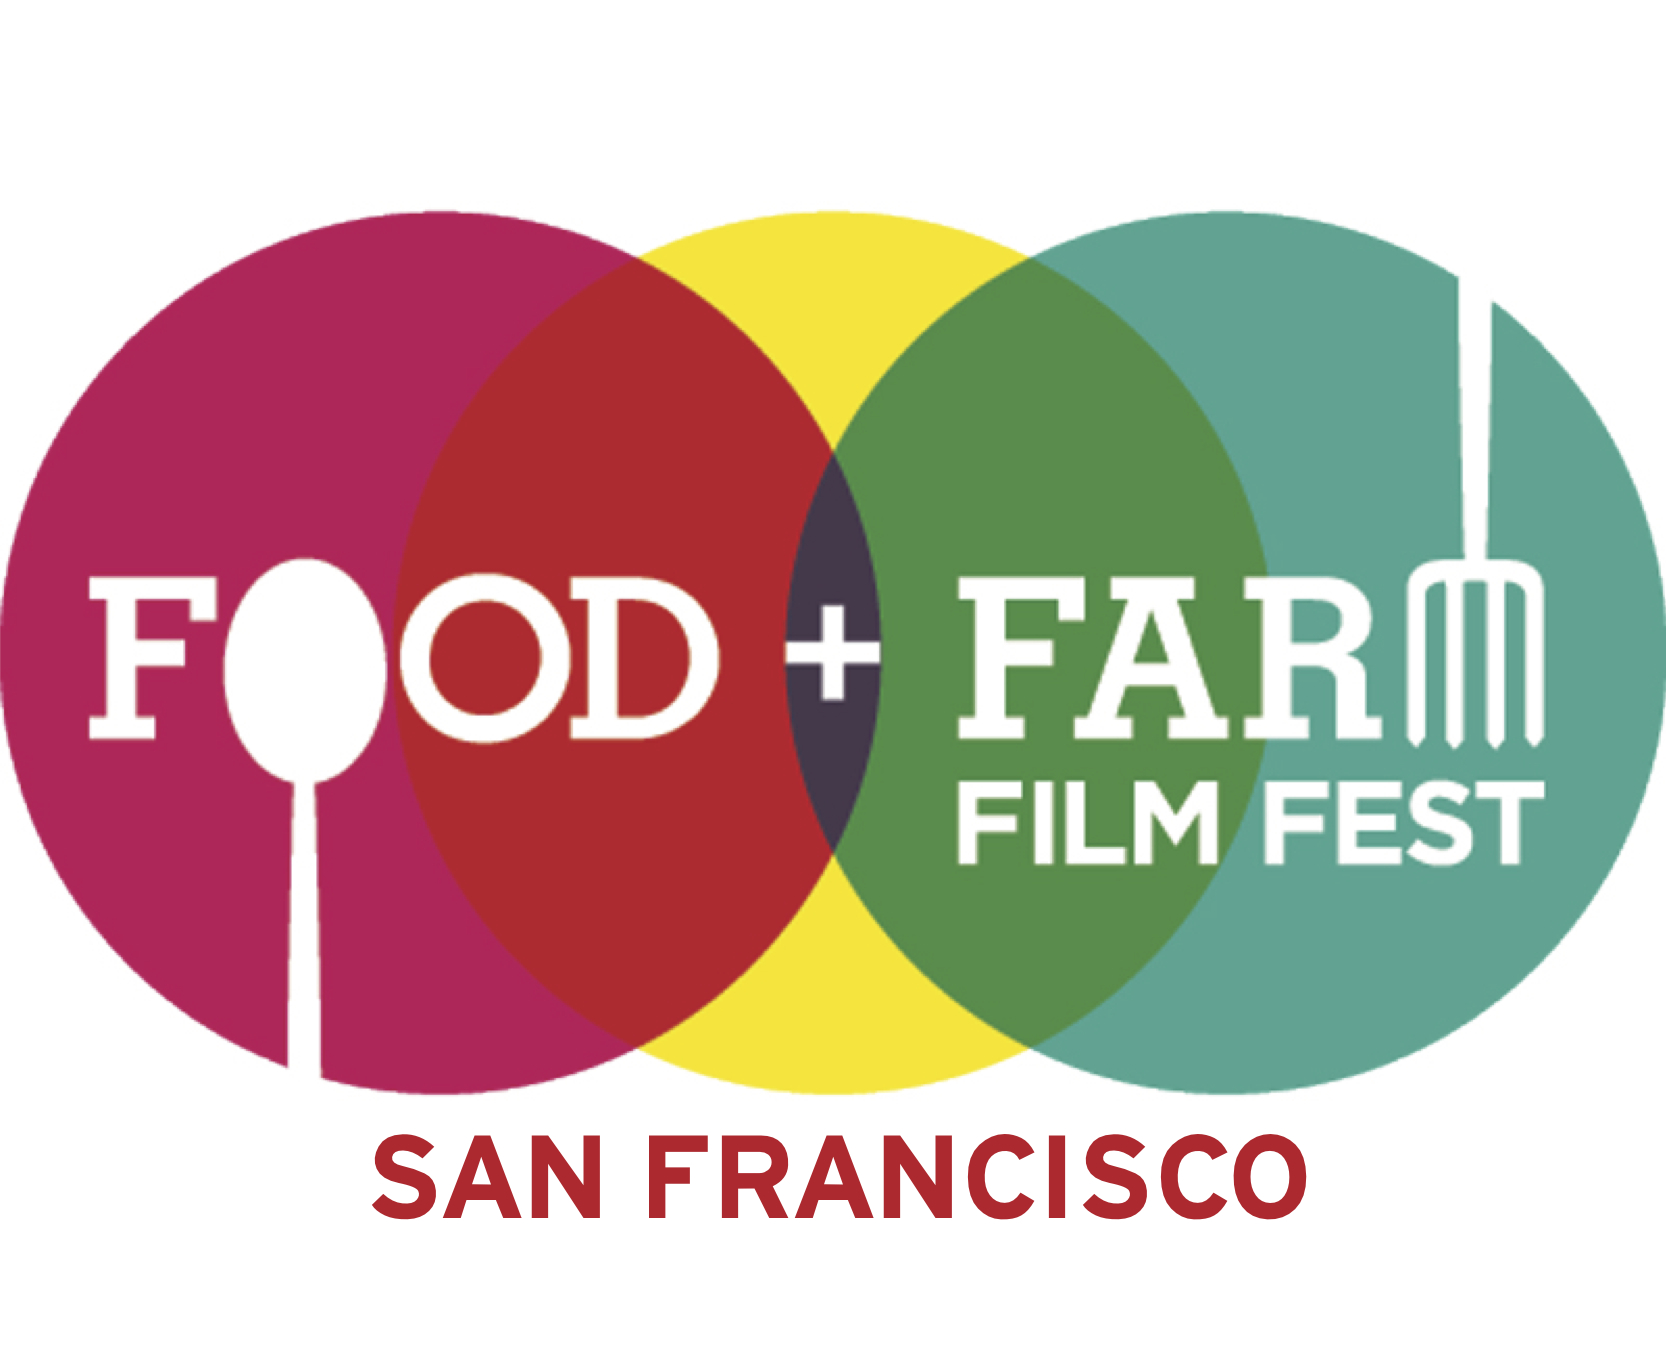 Food + Farm Film Fest